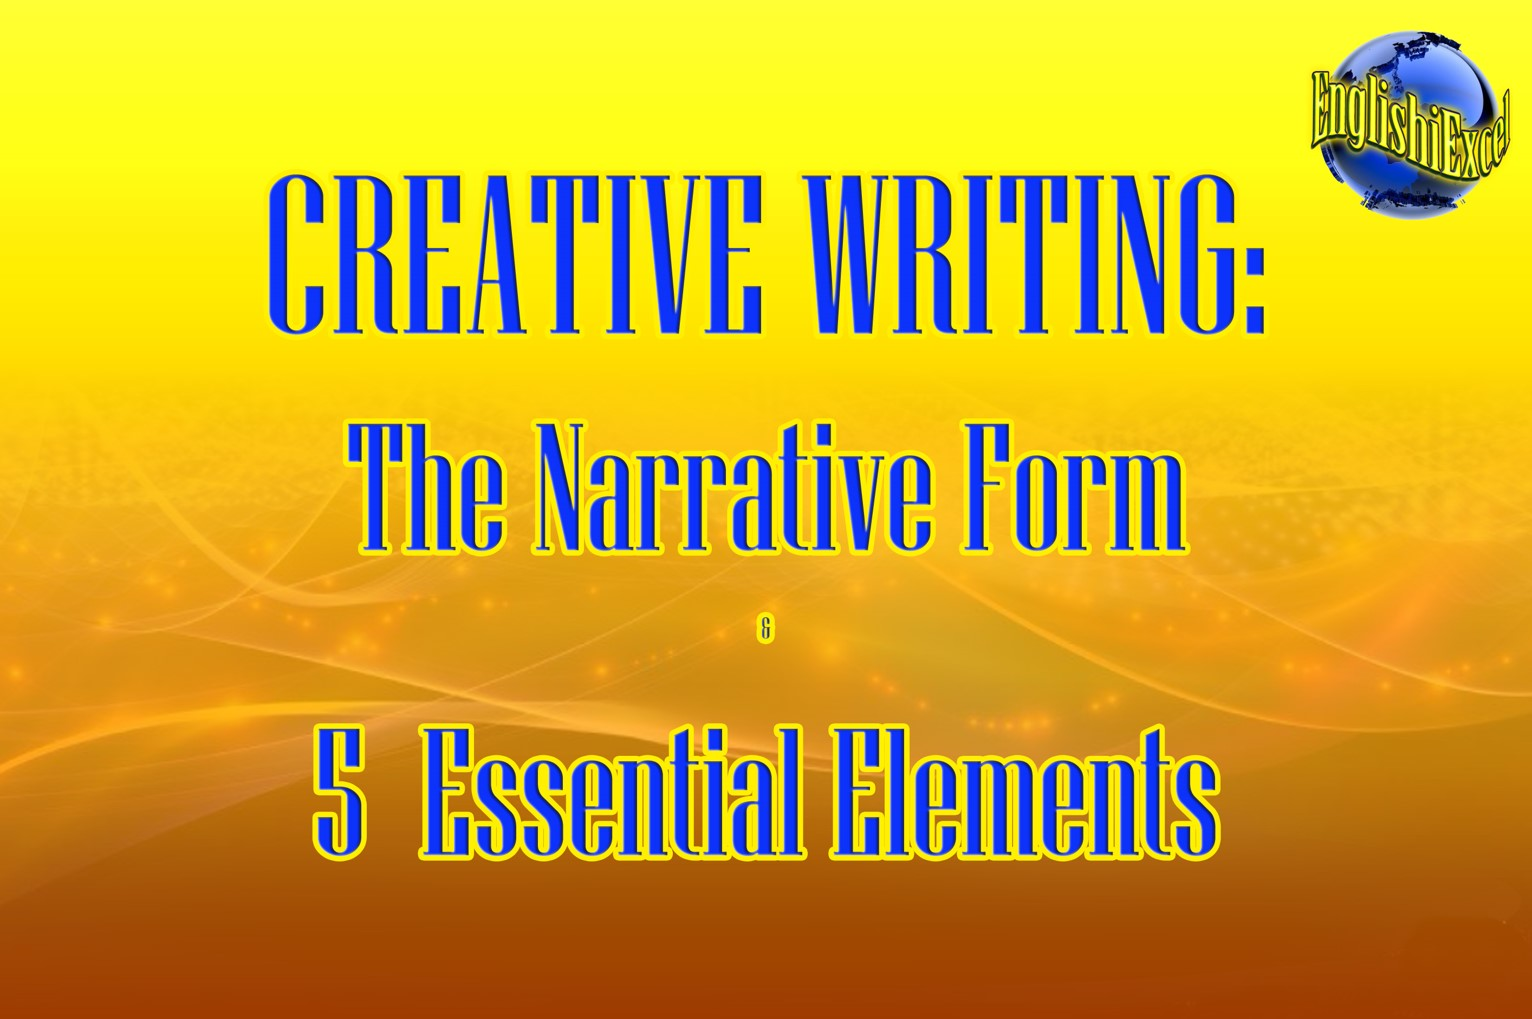 Unit 1: Narrative Form & 5 Essential Elements - https://ed.ted.com/on/dbEyMTNv